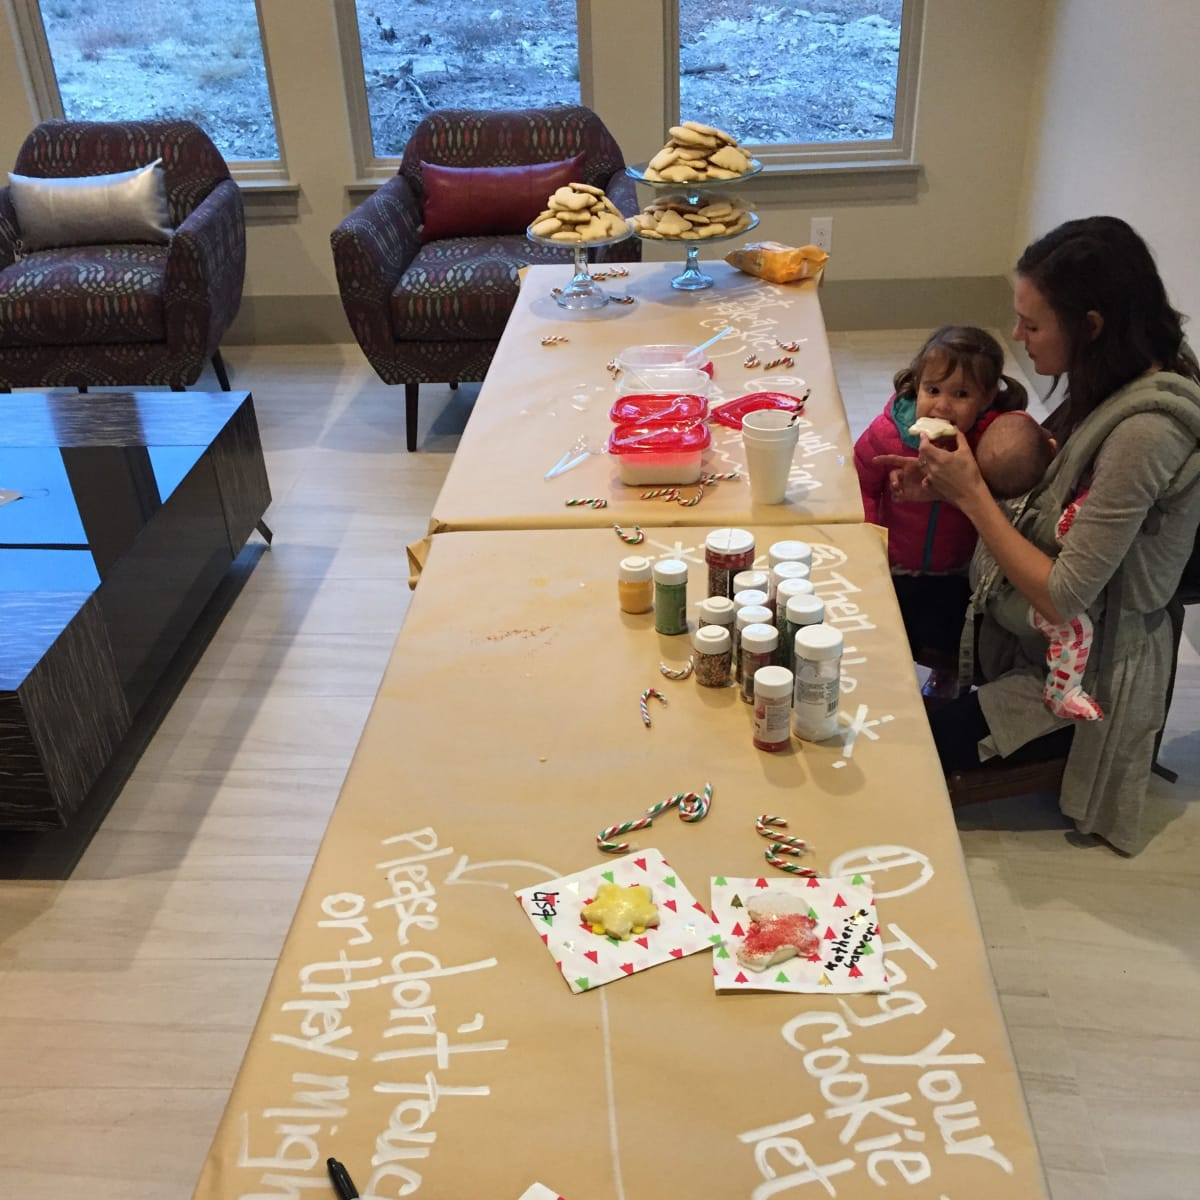 The decorate-your-own-cookie station at 105 Lajitas